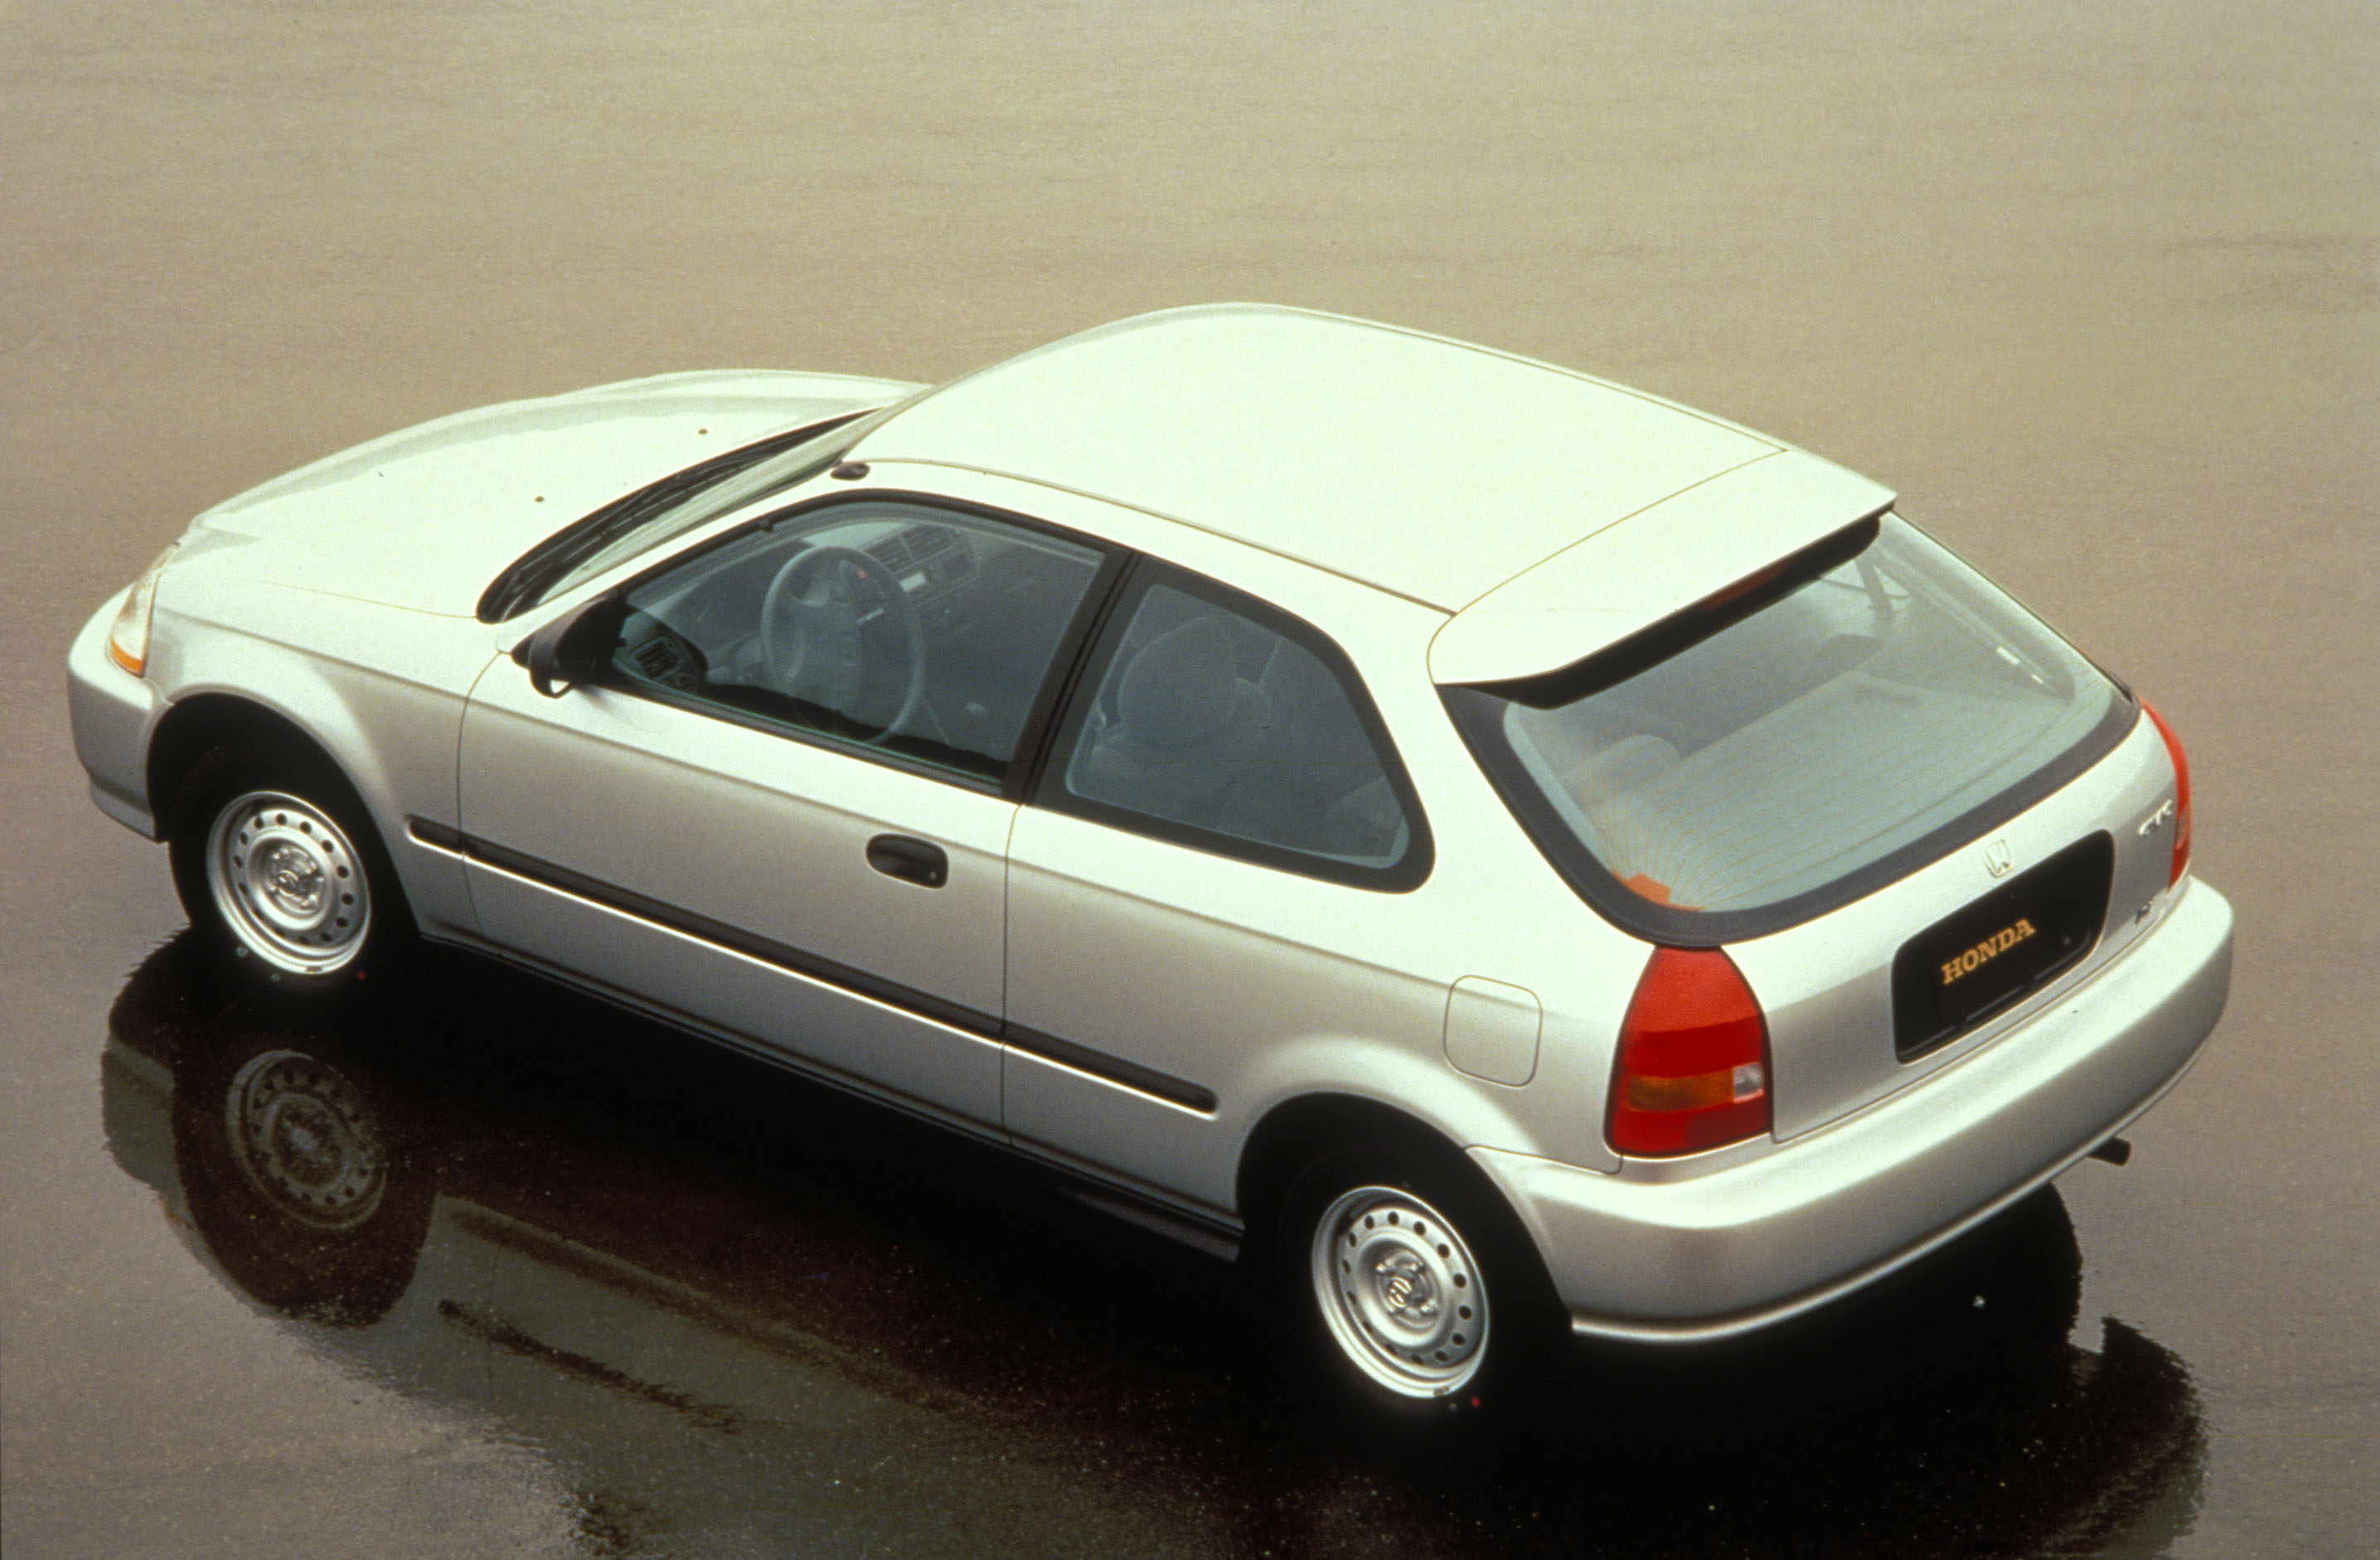 1996 Honda Civic HX Hatchback